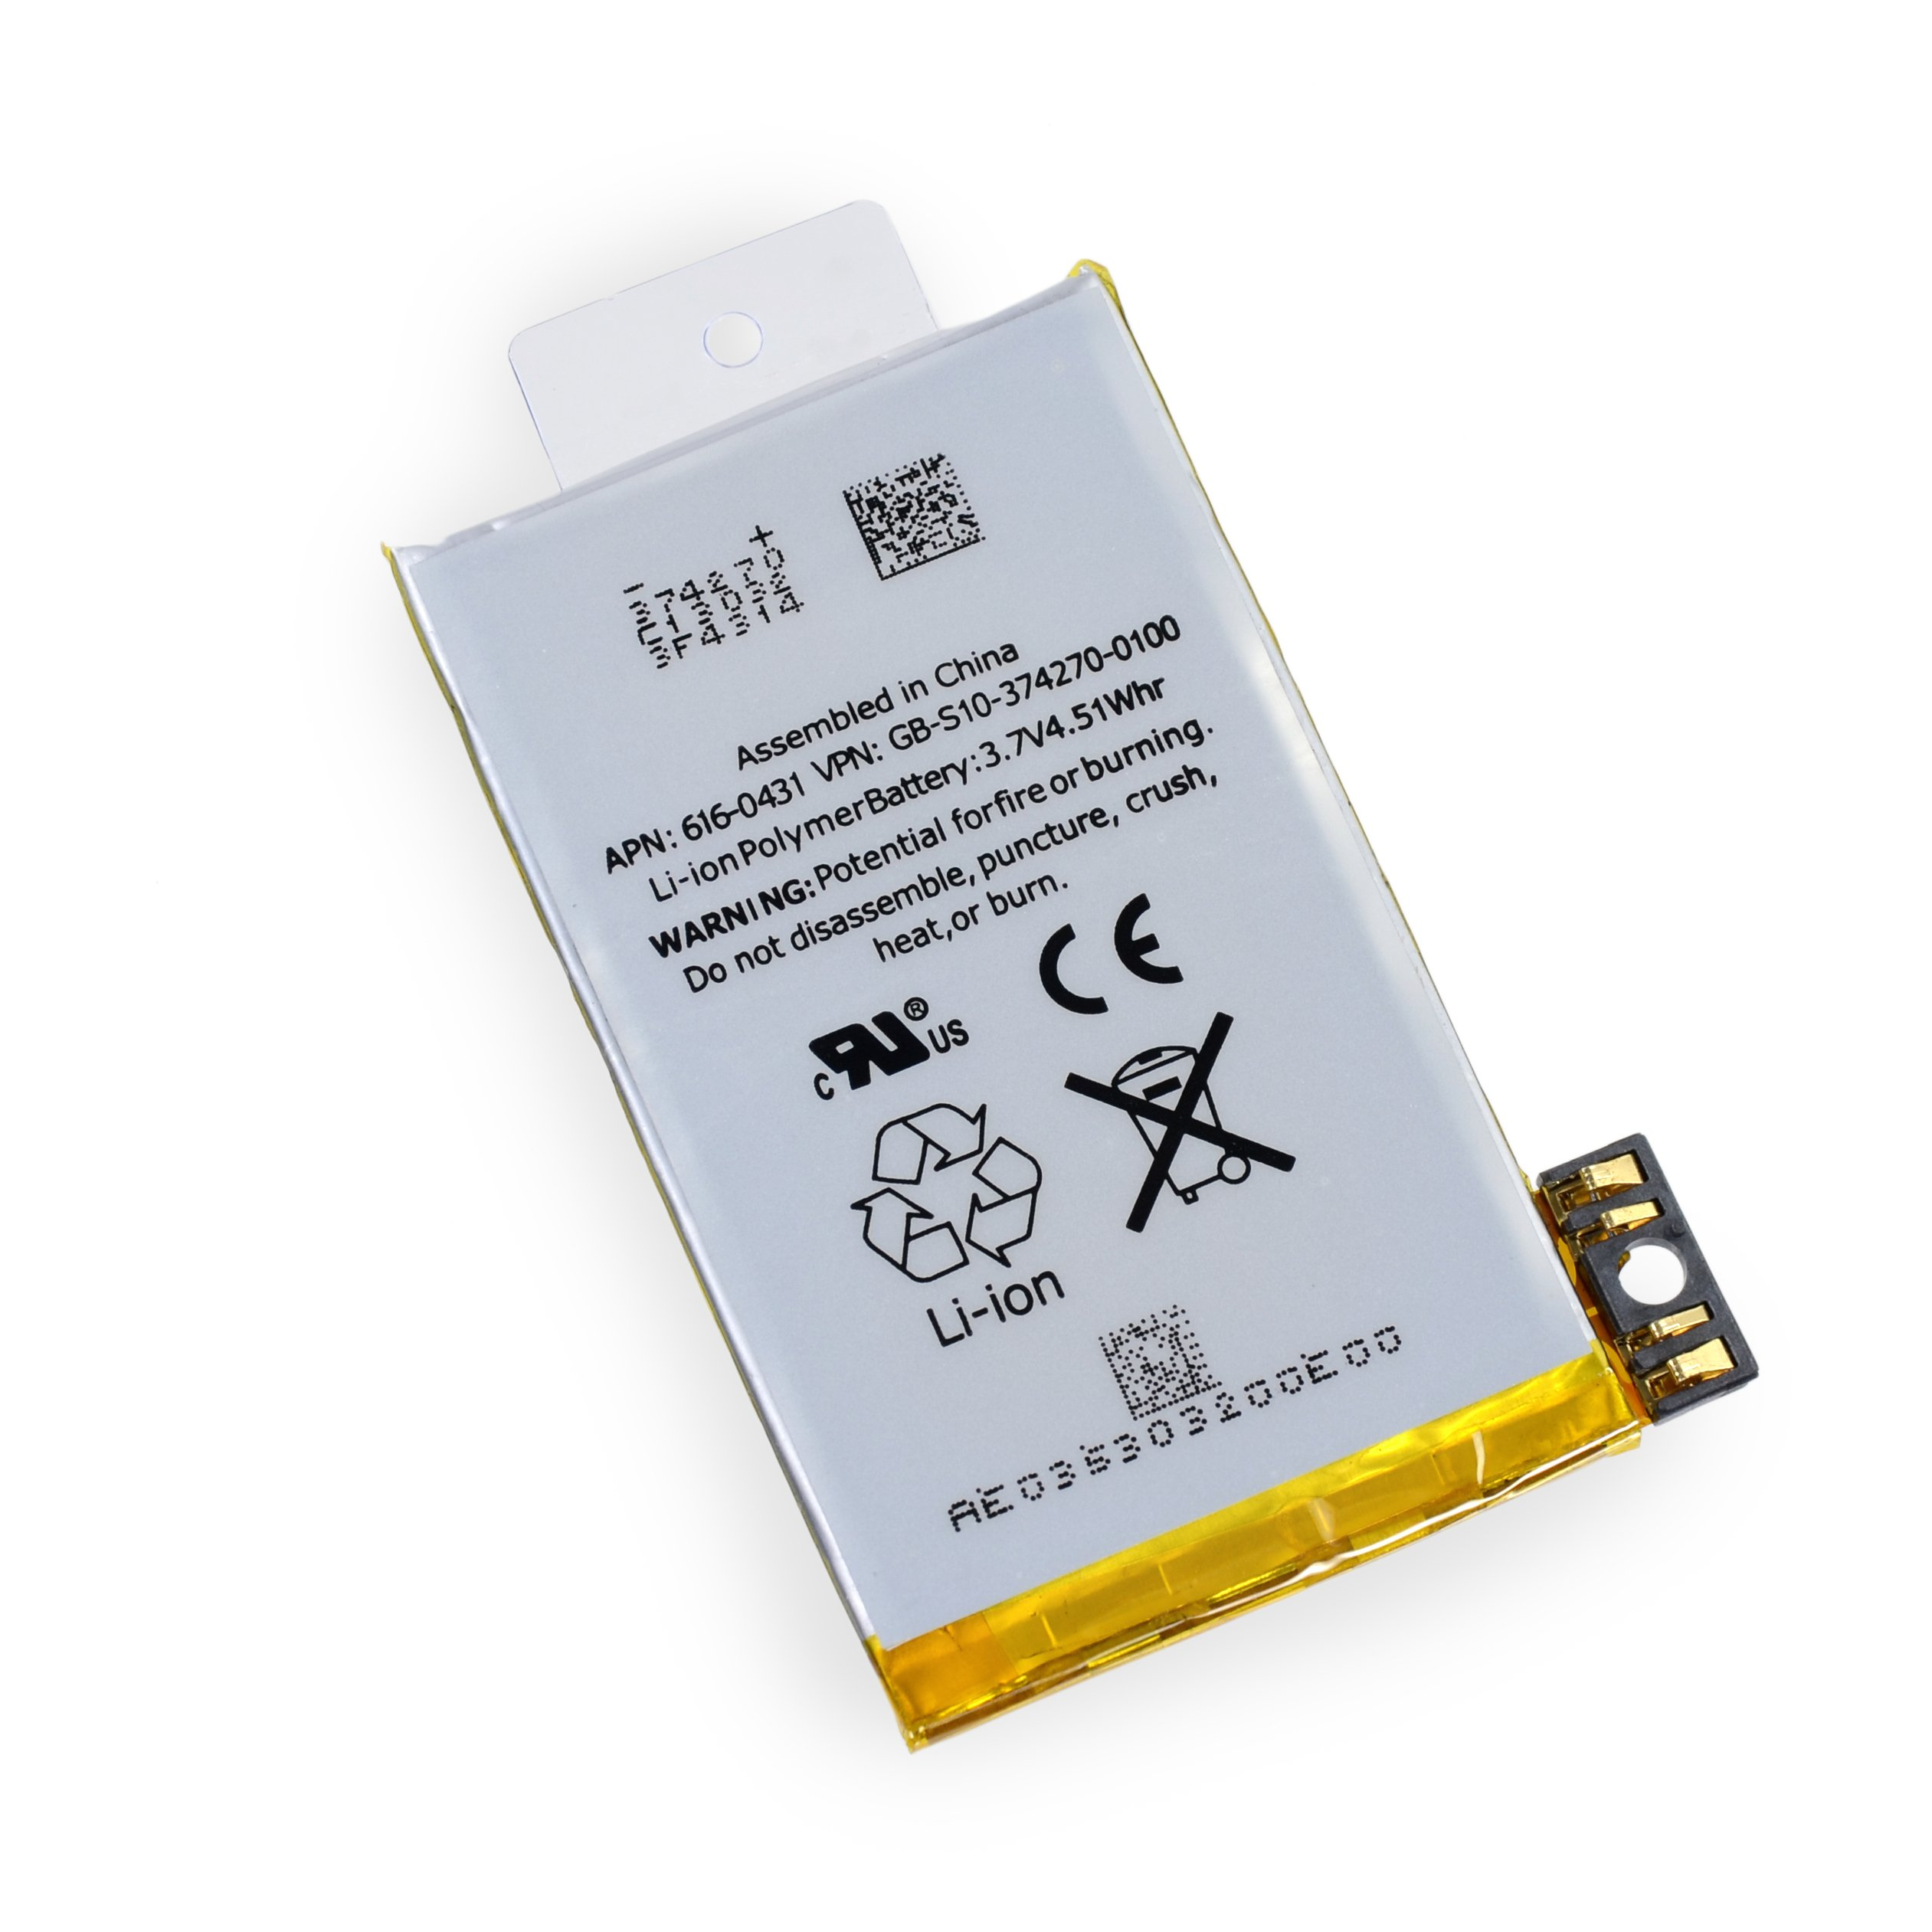 iPhone 3GS Replacement Battery图片